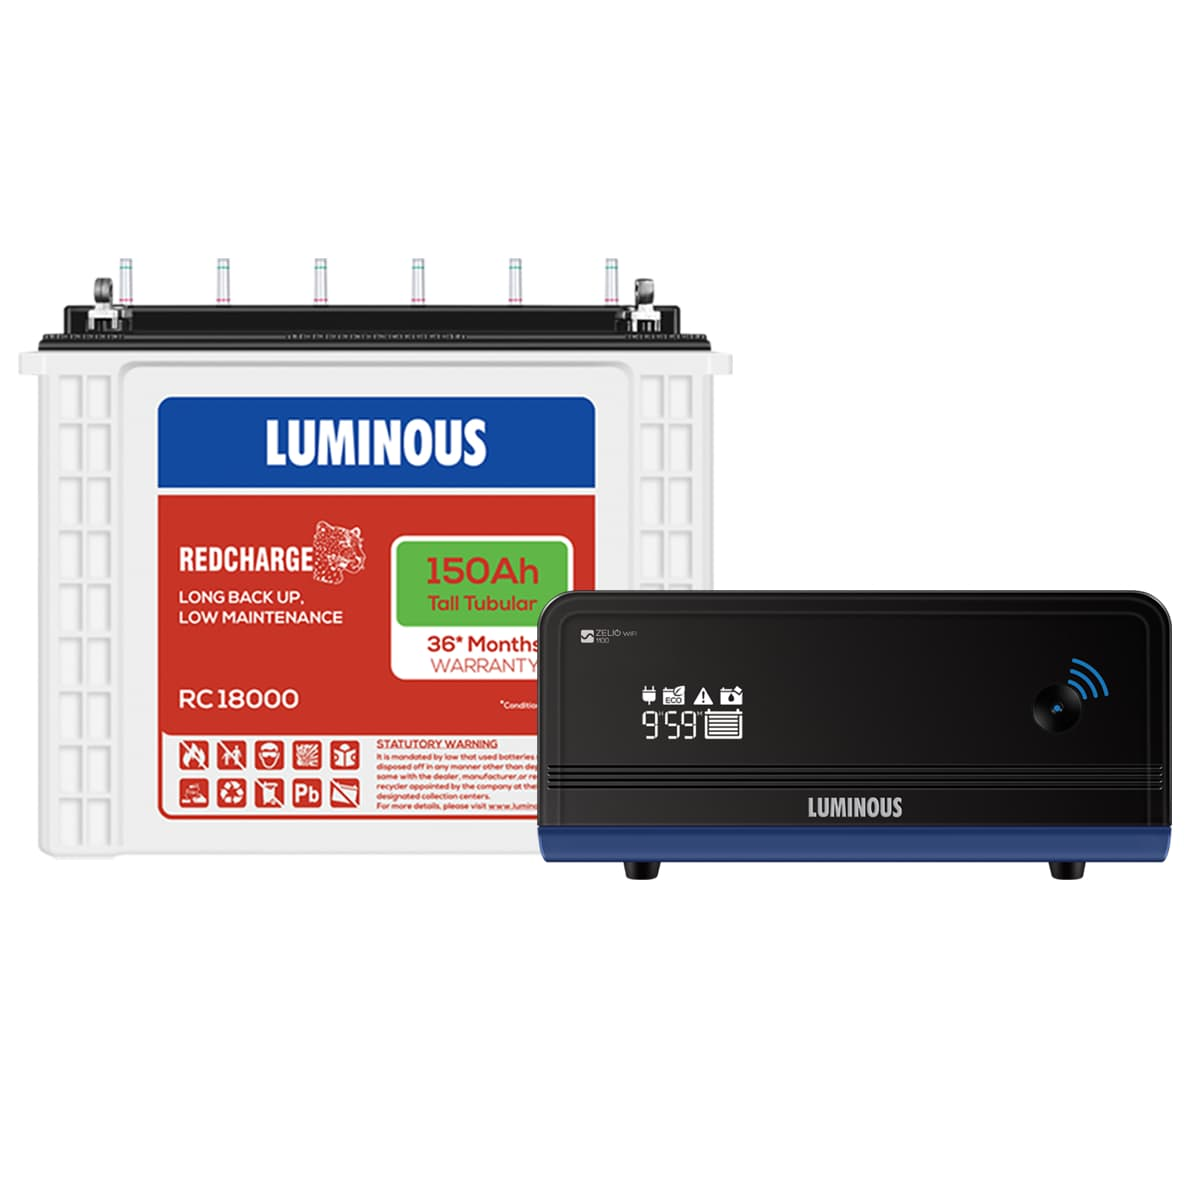 Luminous Zelio Wifi 1100 + Red Charge Rc 18000